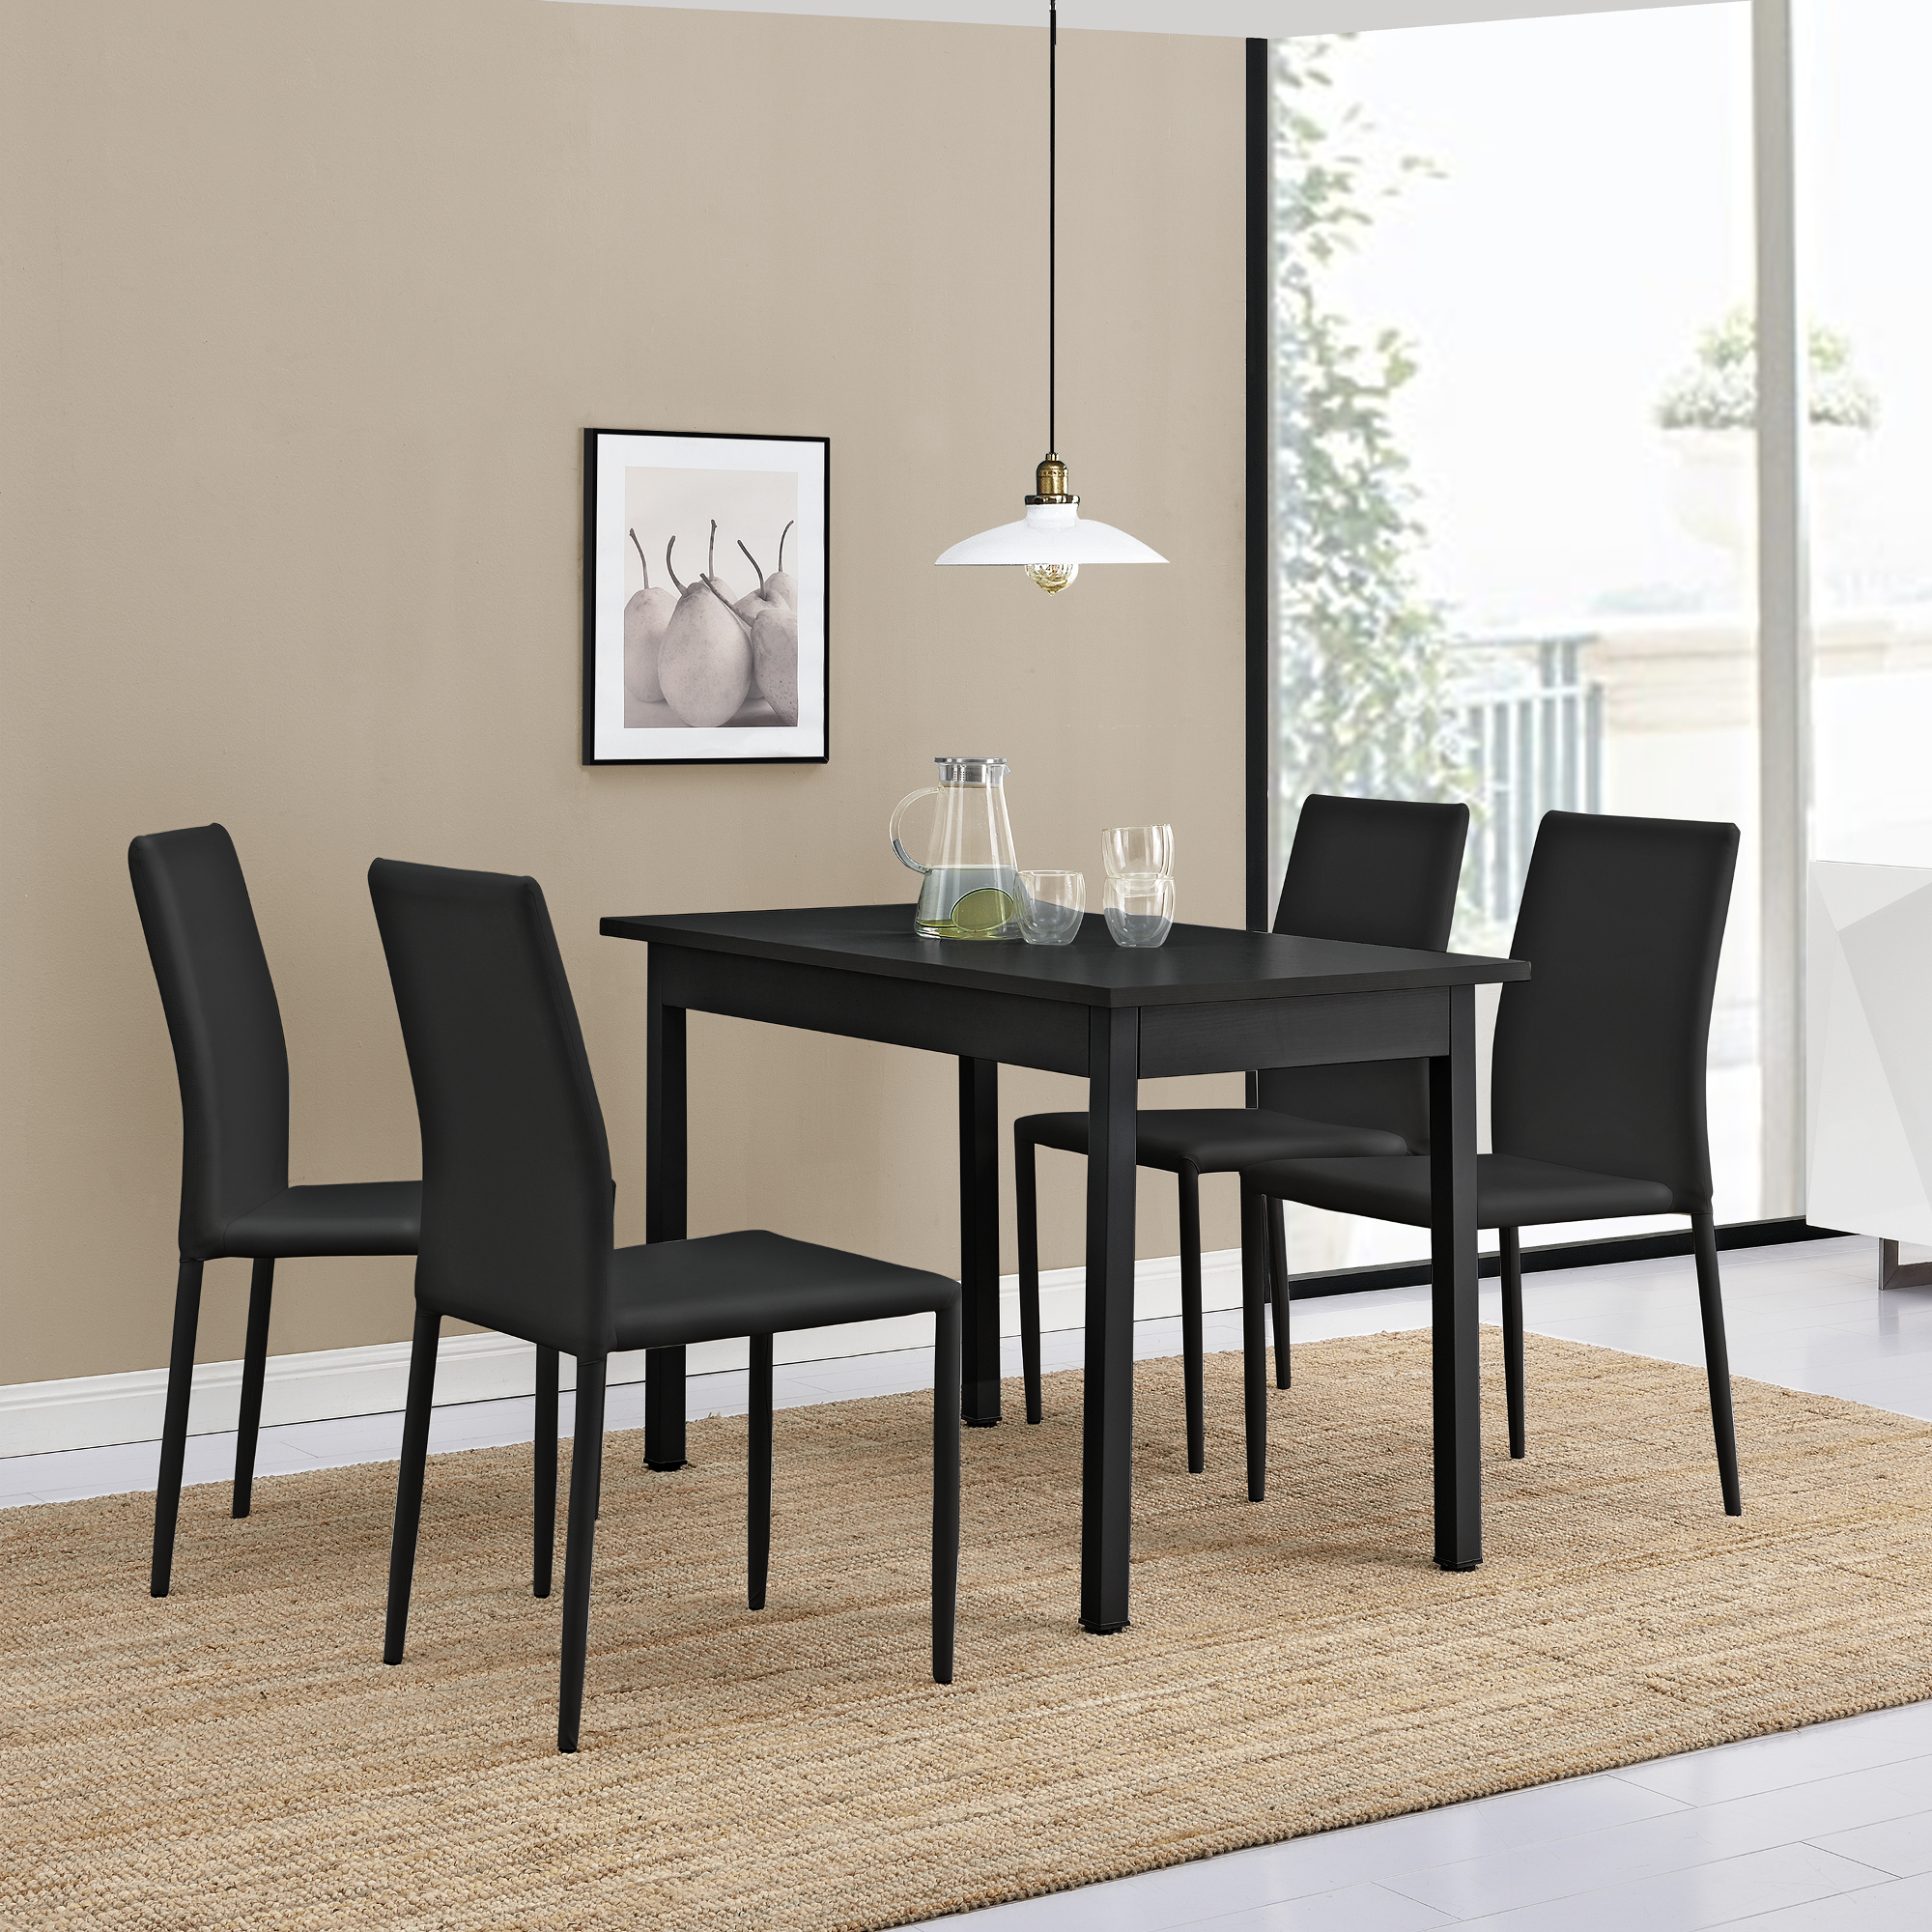 Table de manger avec 4 chaises noir 120x60 - Set de table en liege ...